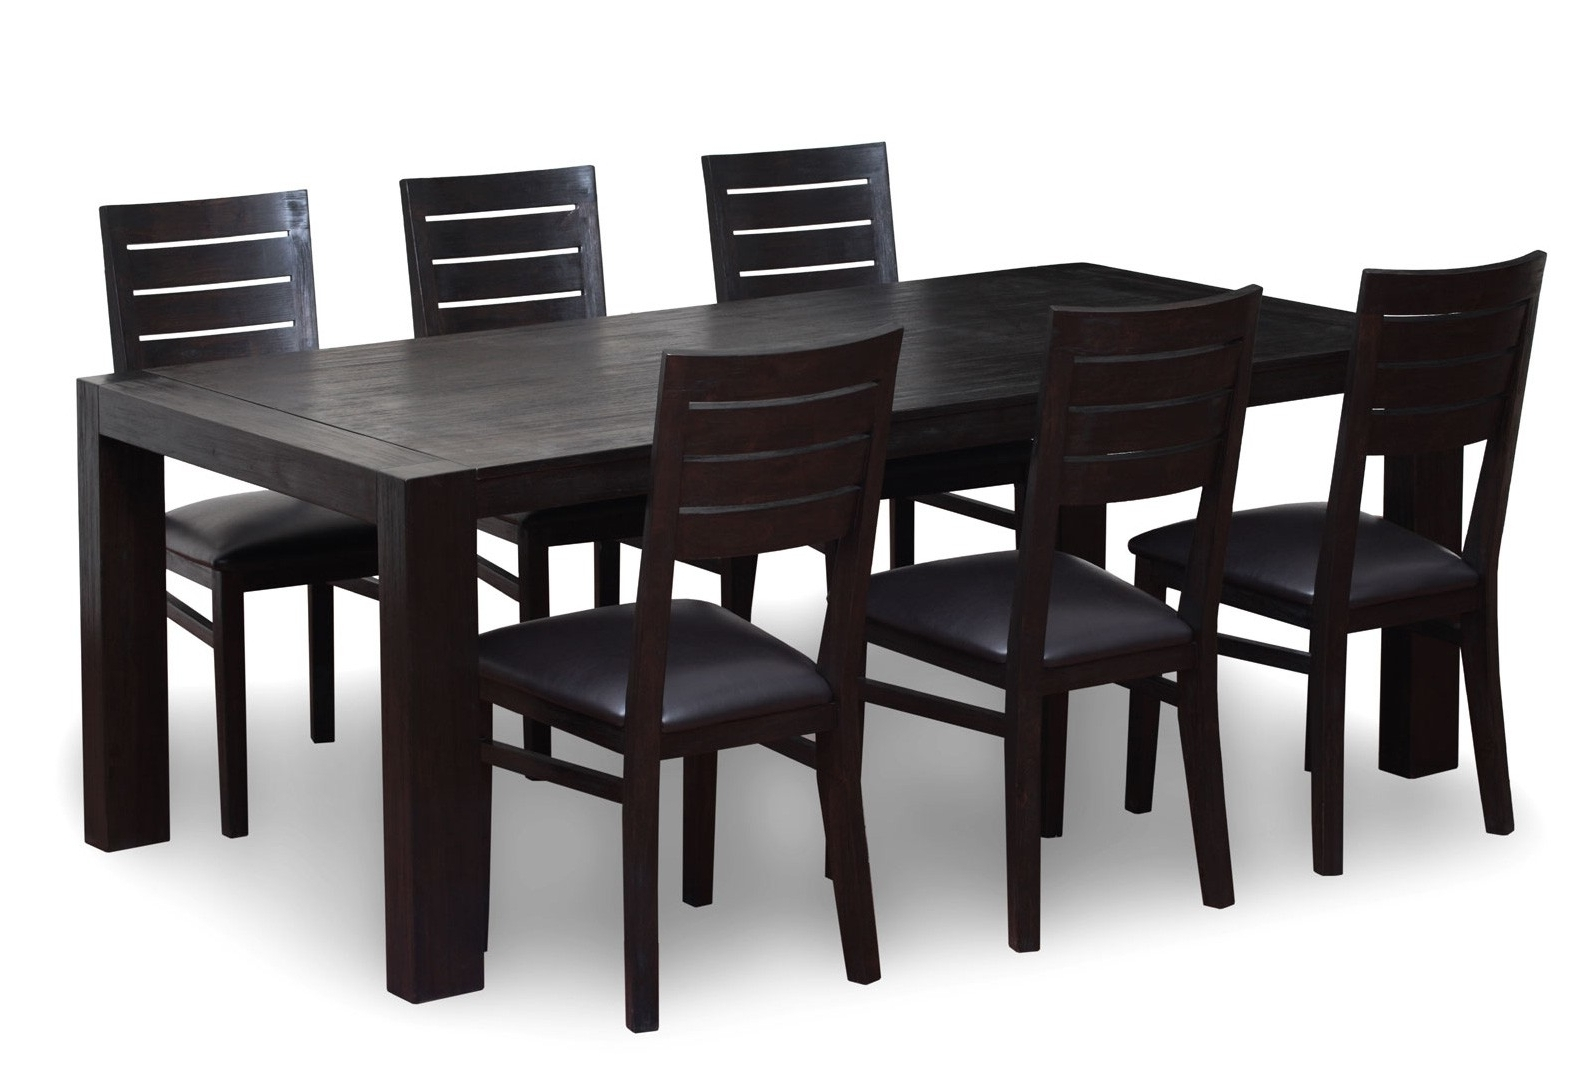 Favorite Wood Dining Tables And 6 Chairs Throughout 6 Seater Wooden Dining Table Set – Antique Ebony (View 5 of 25)